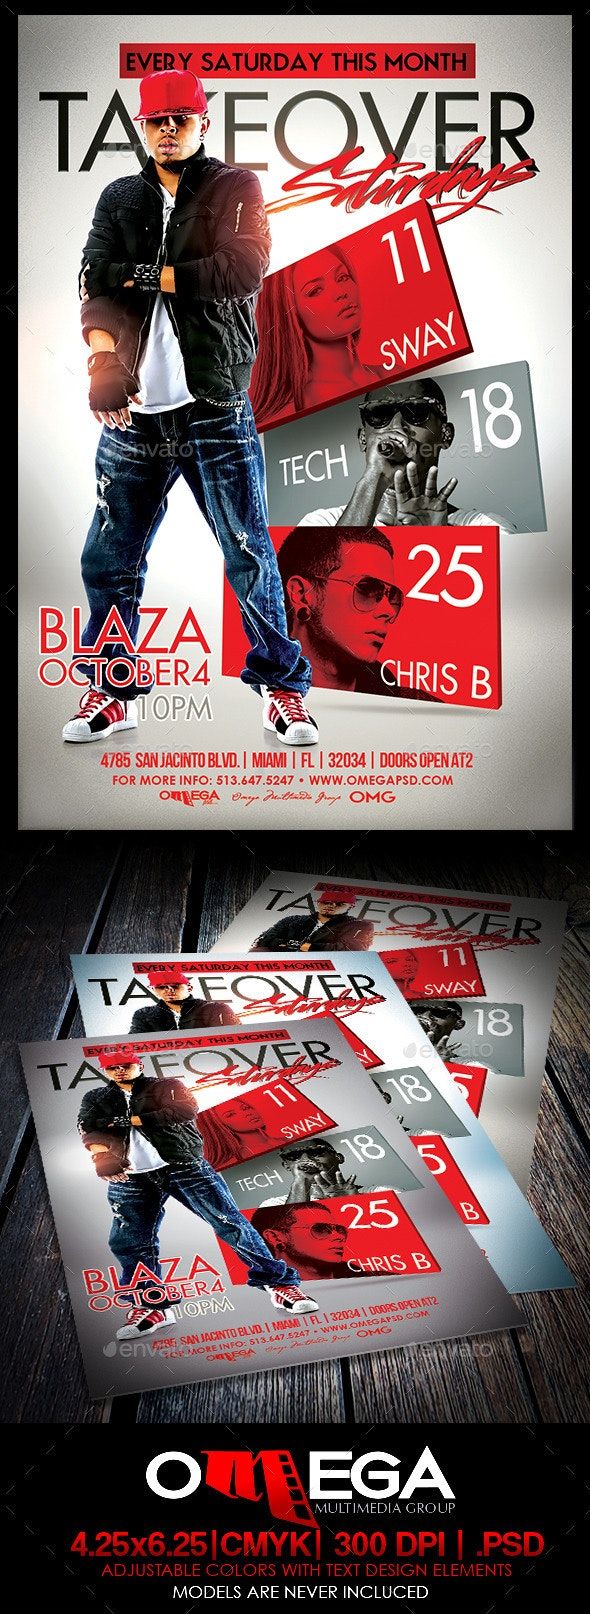 Takeover Saturdays - Events Flyers